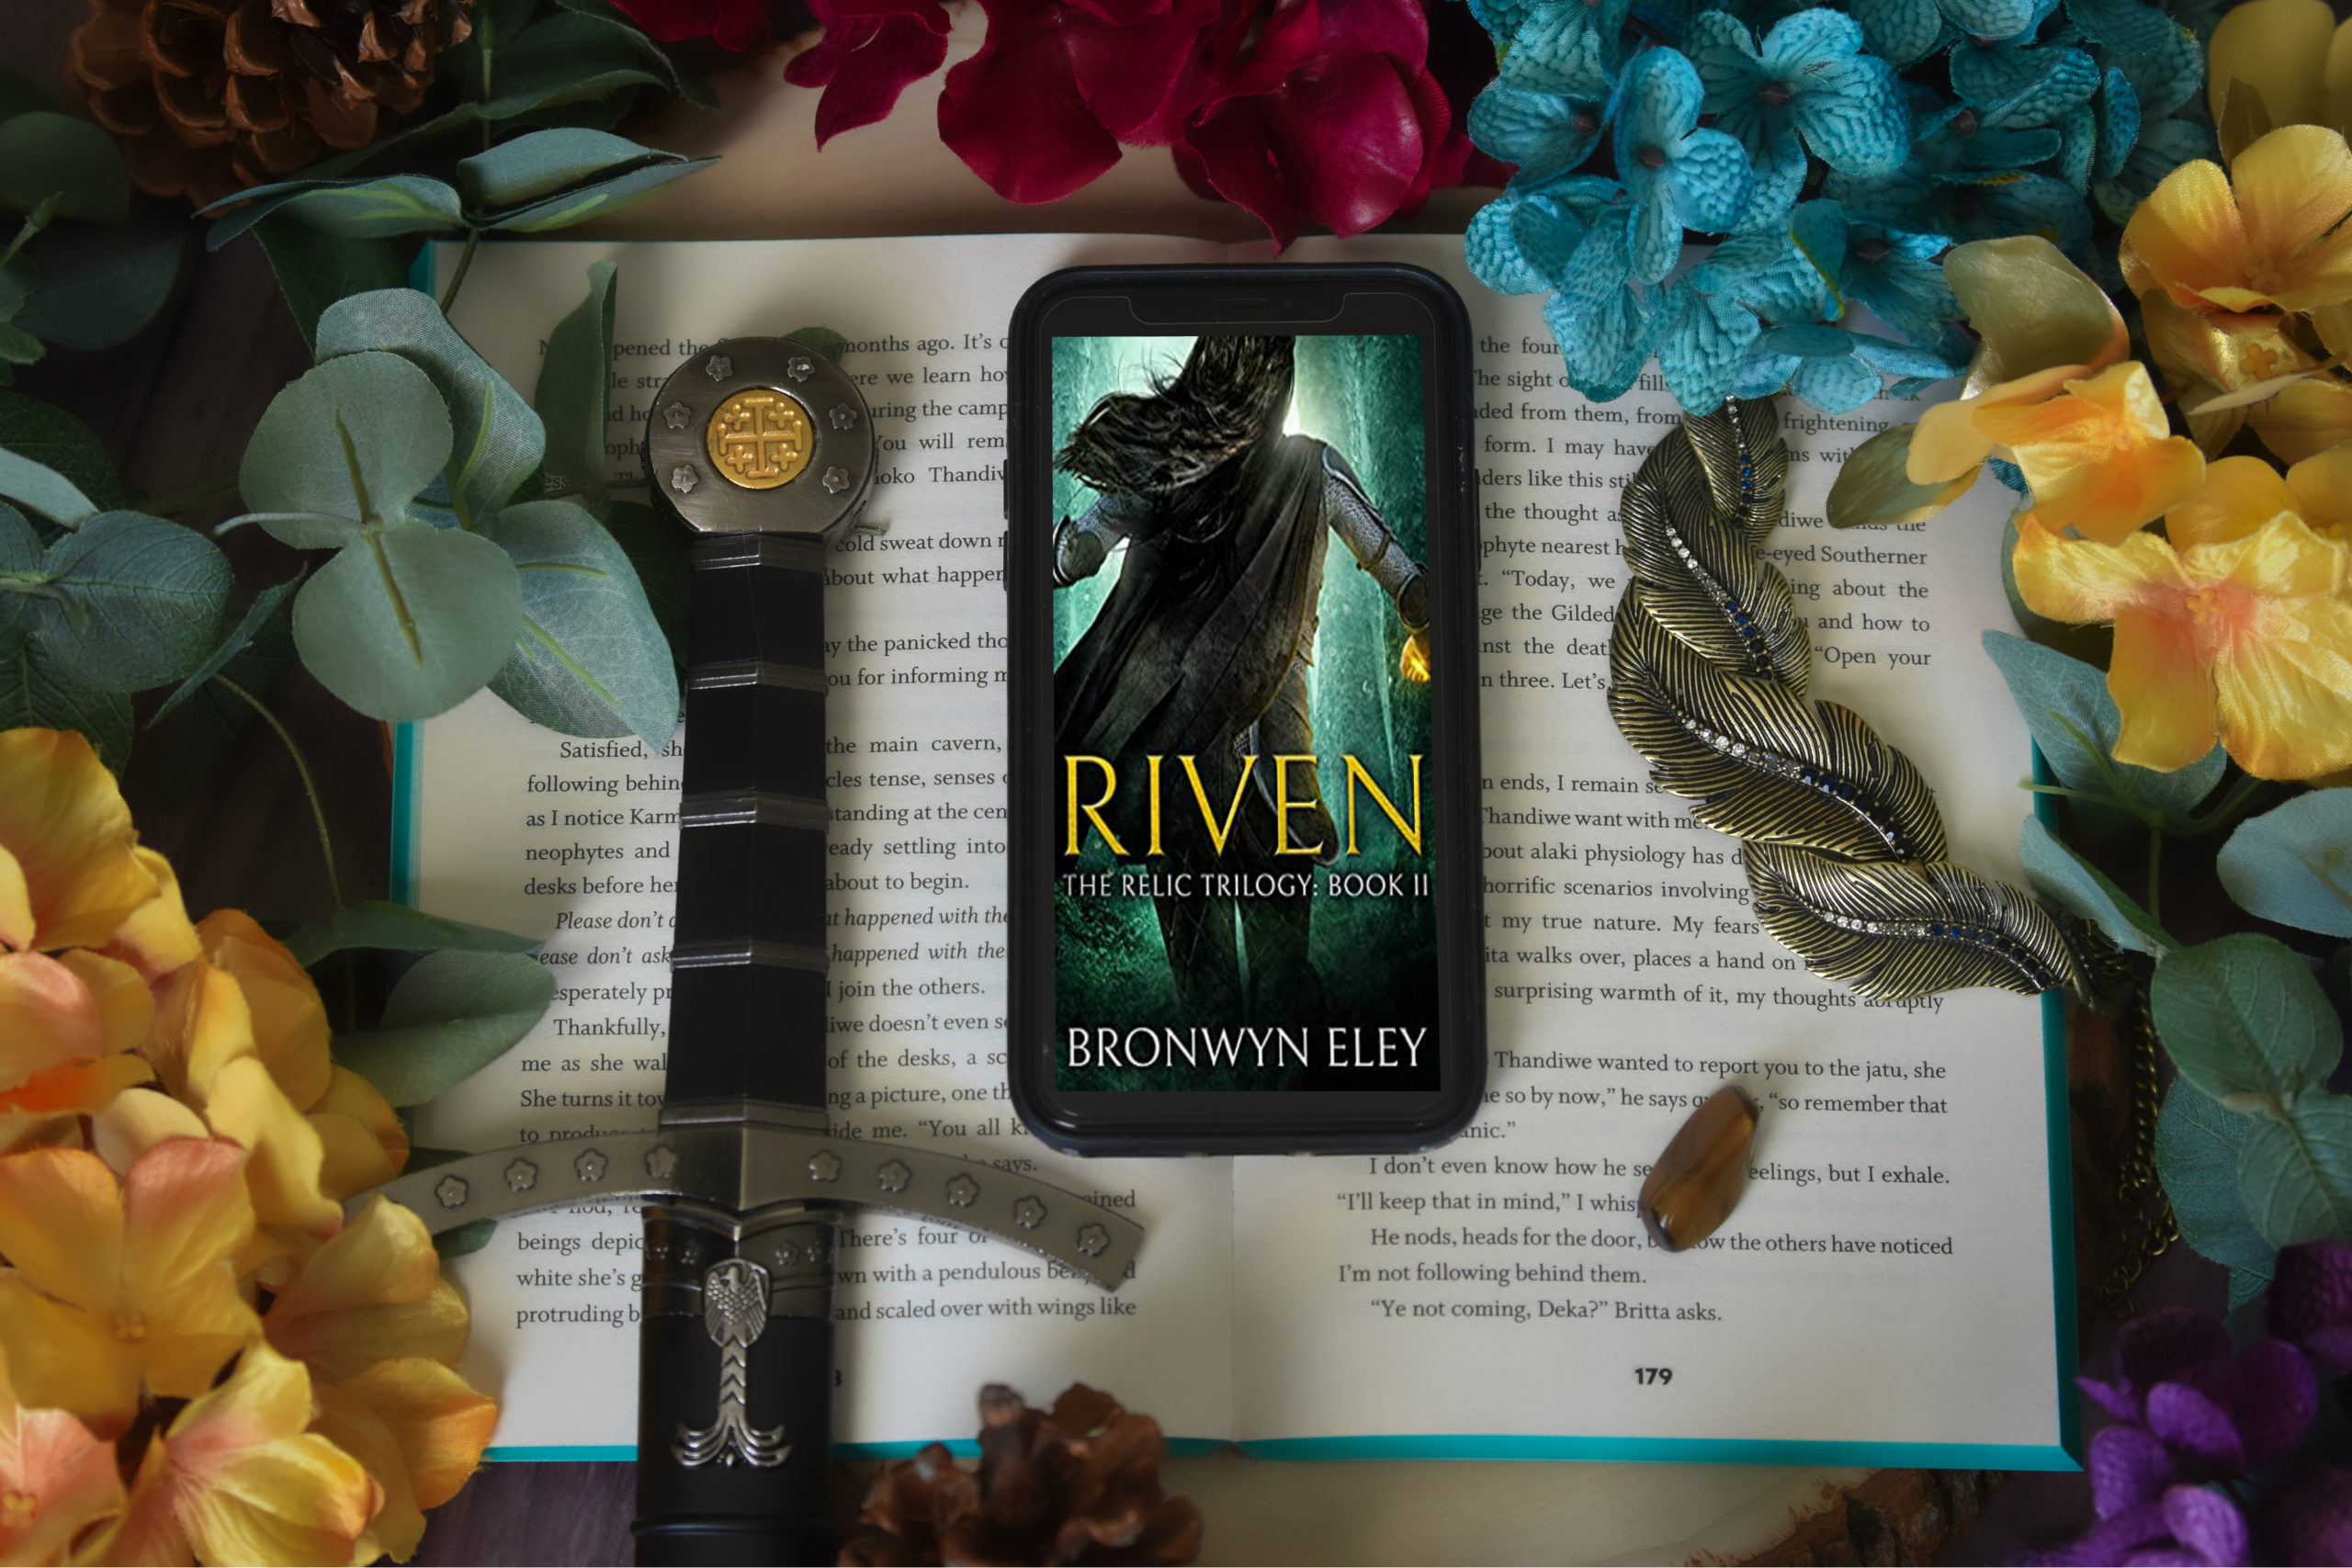 RIVEN by Bronwyn Eley | ARC Review of Book Two in The Relic Trilogy